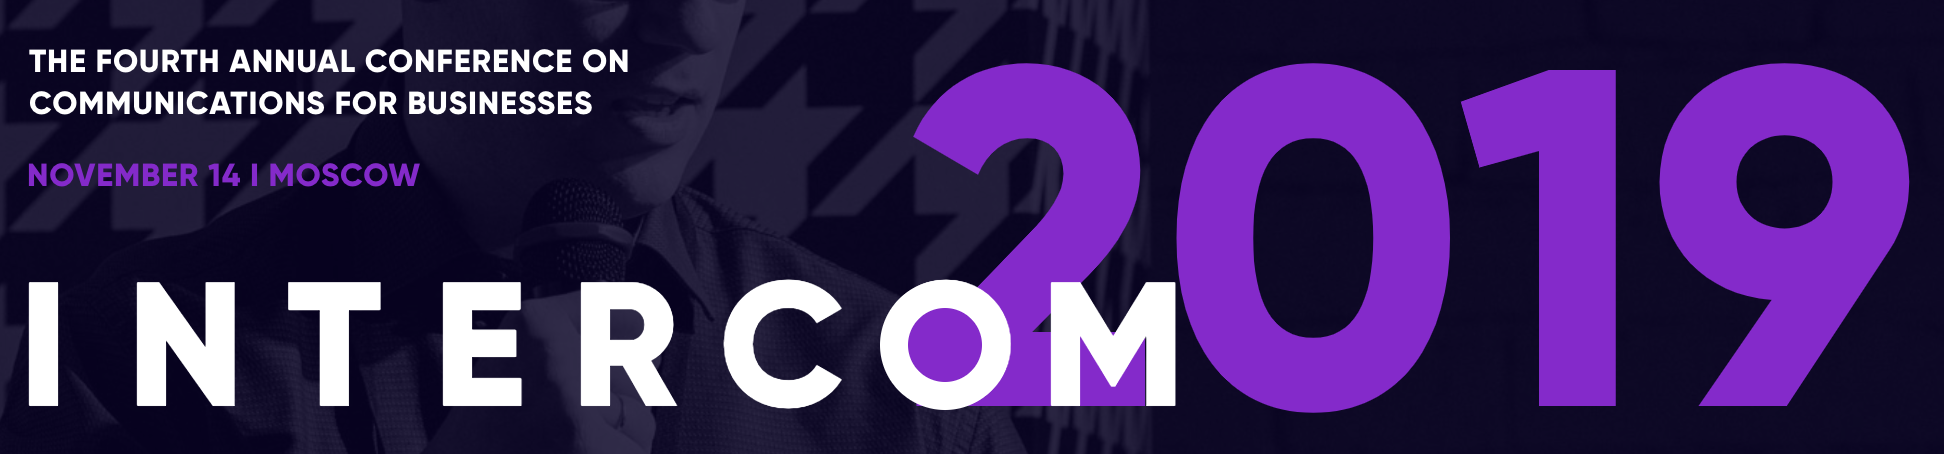 INTERCOM '19 will take place in Moscow in November